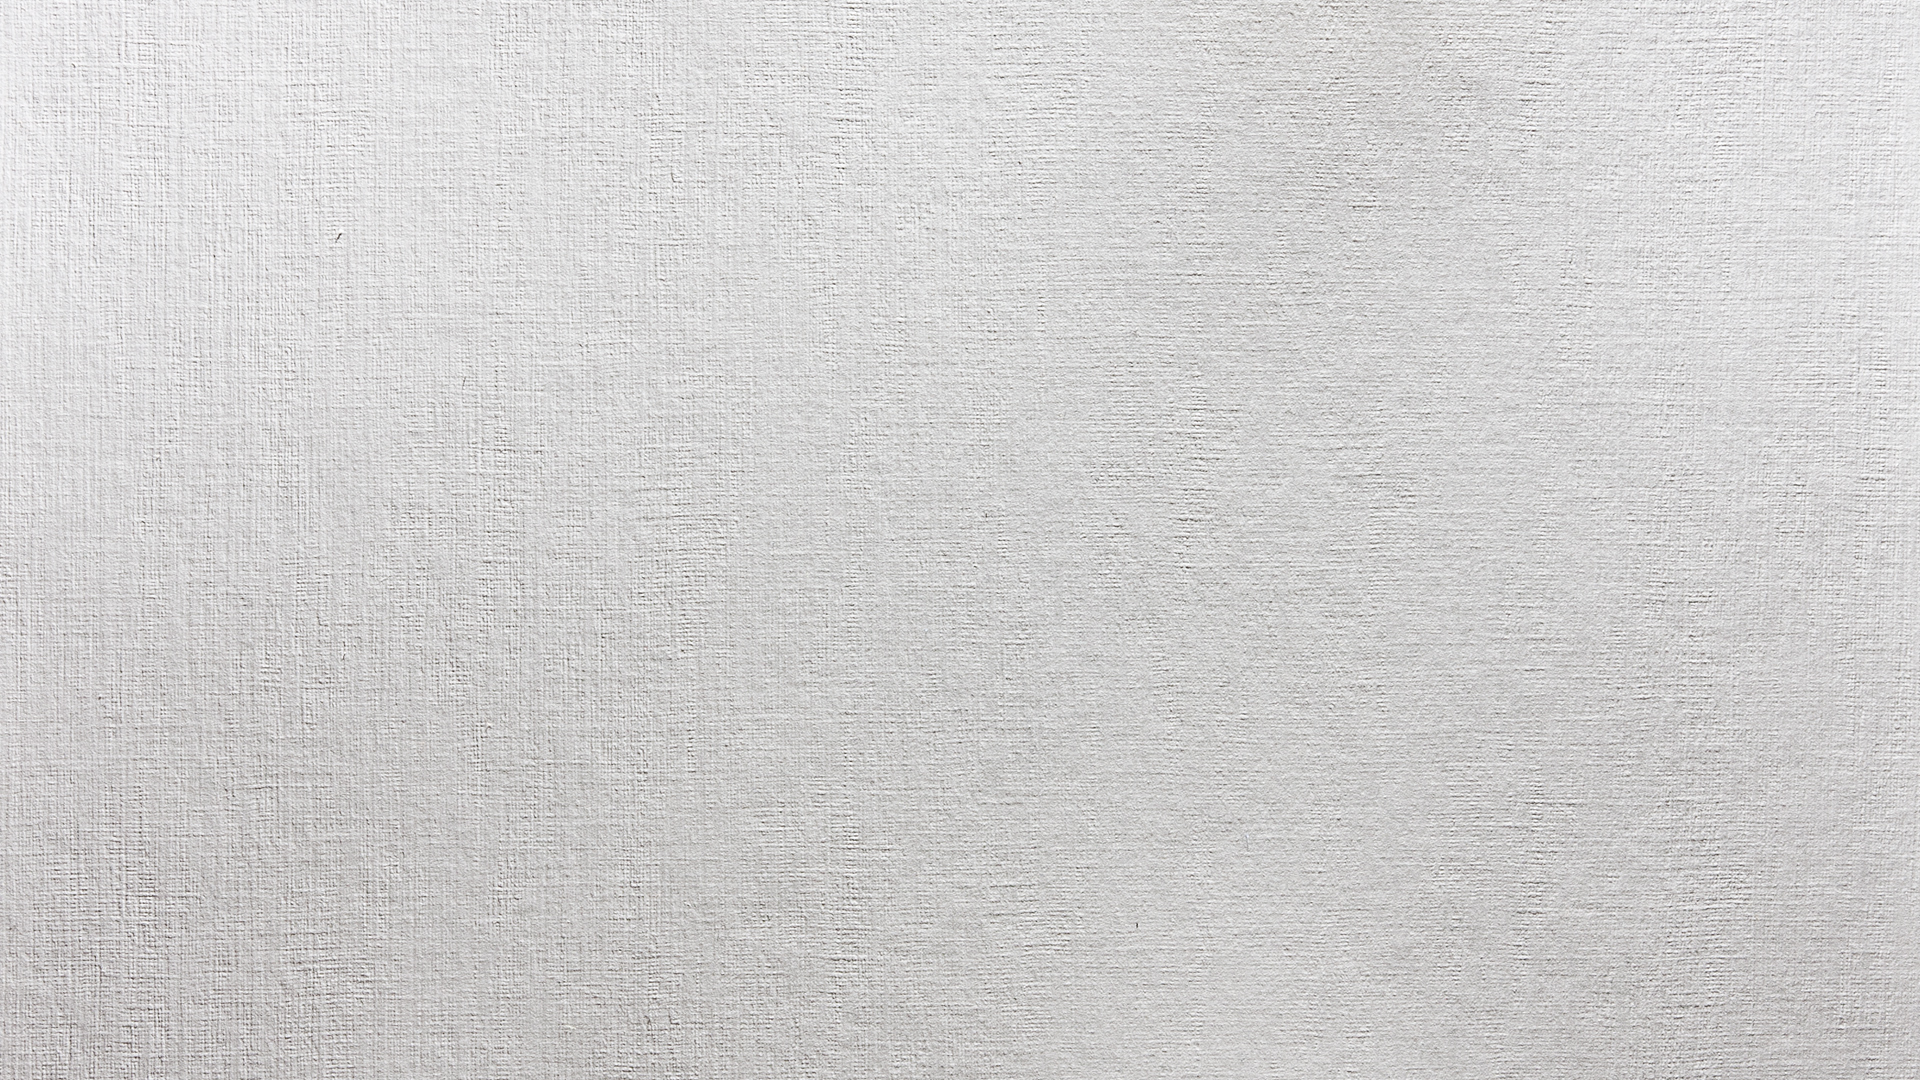 Natural-Paper-Background-Texture-HD